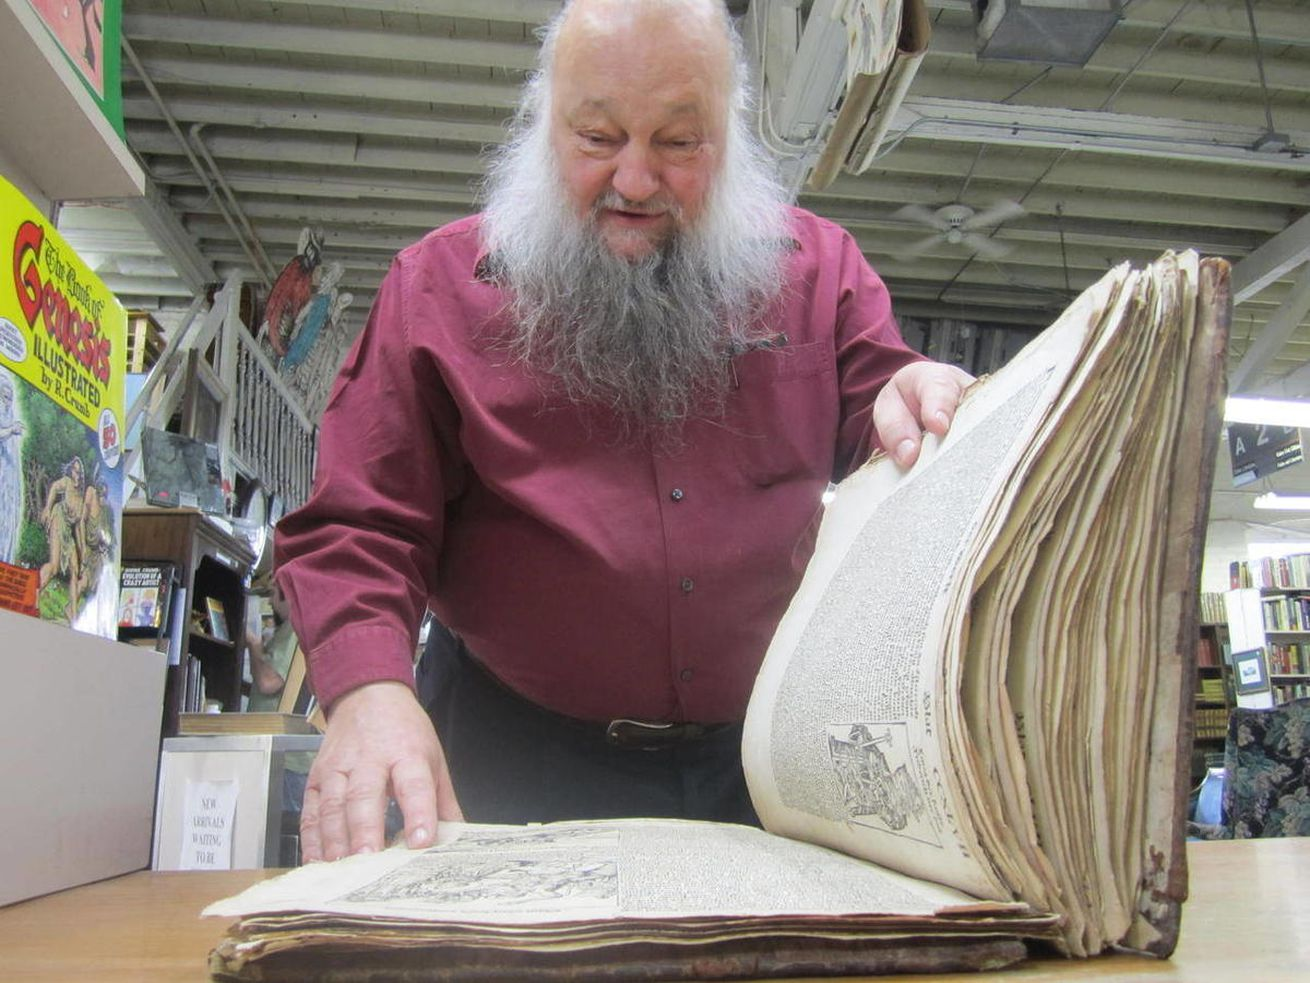 In this photo taken Saturday, April 23, 2011, Utah book dealer Ken Sanders looks over a copy of the Nuremberg Chronicle published in 1493. The book is on display at Ken Sanders Rare Books in Salt Lake City. Sanders across the 500-year-old German language